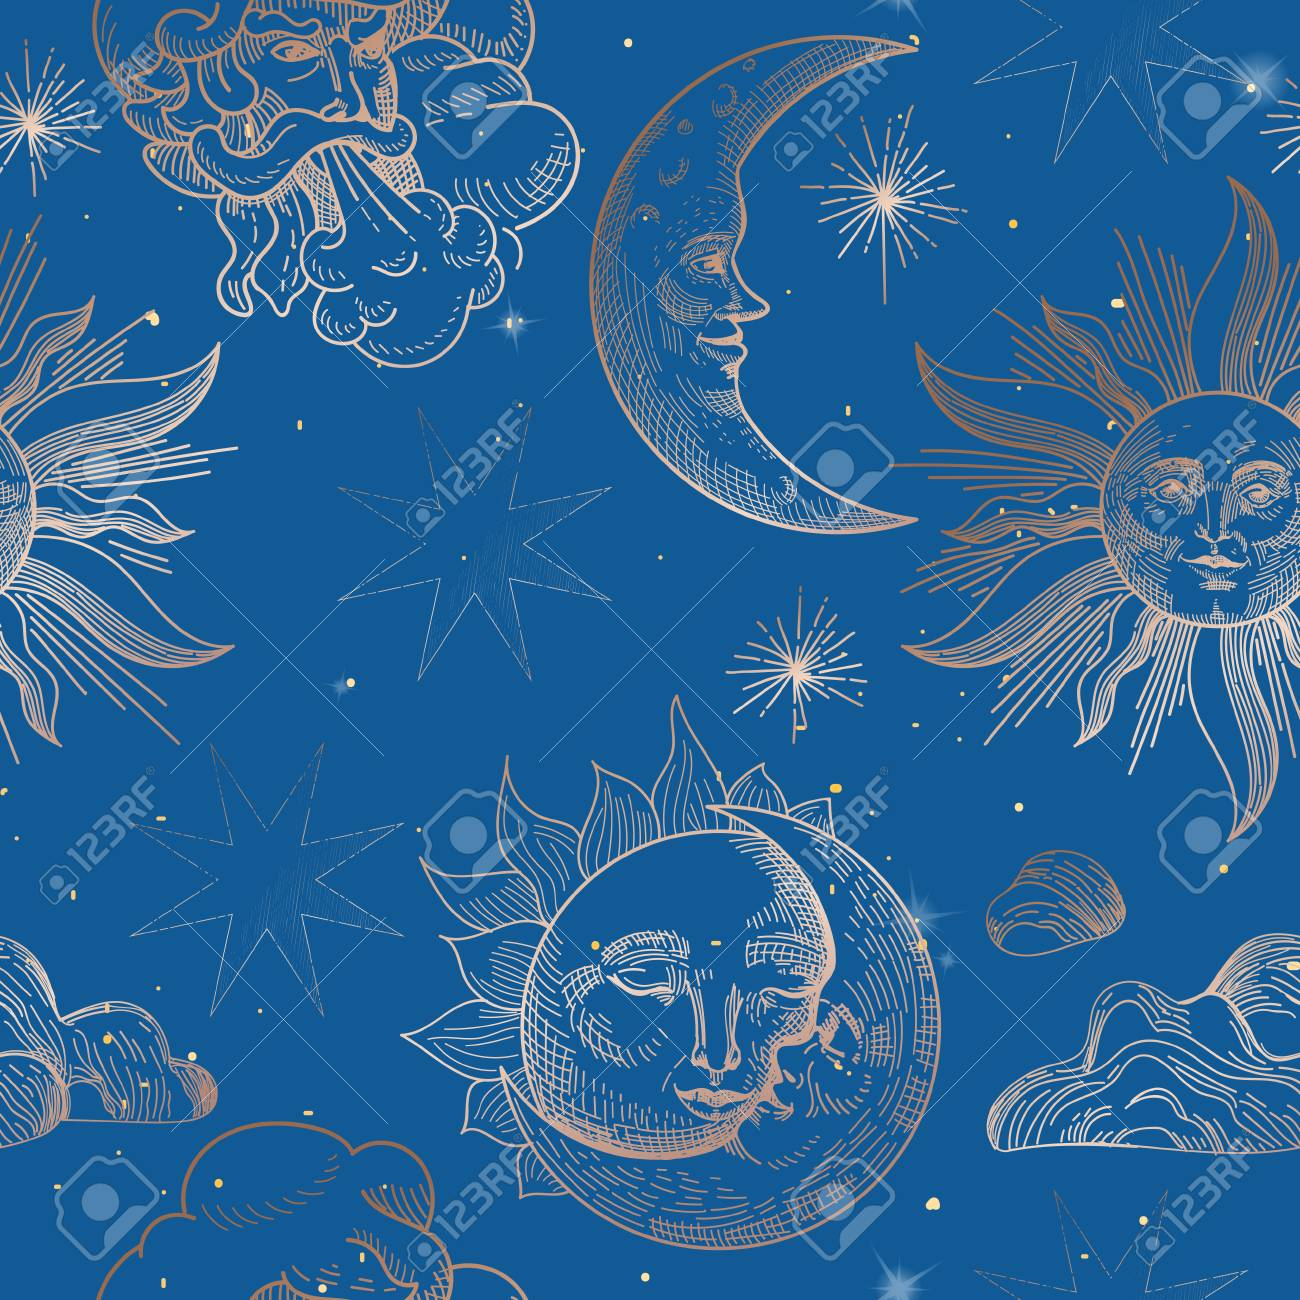 Sun and Moon Vintage Seamless Pattern. Oriental Style Background with Stars and Celestial Astrological Symbols for Fabric, Wallpaper, Decoration. Vector illustration - 117012460